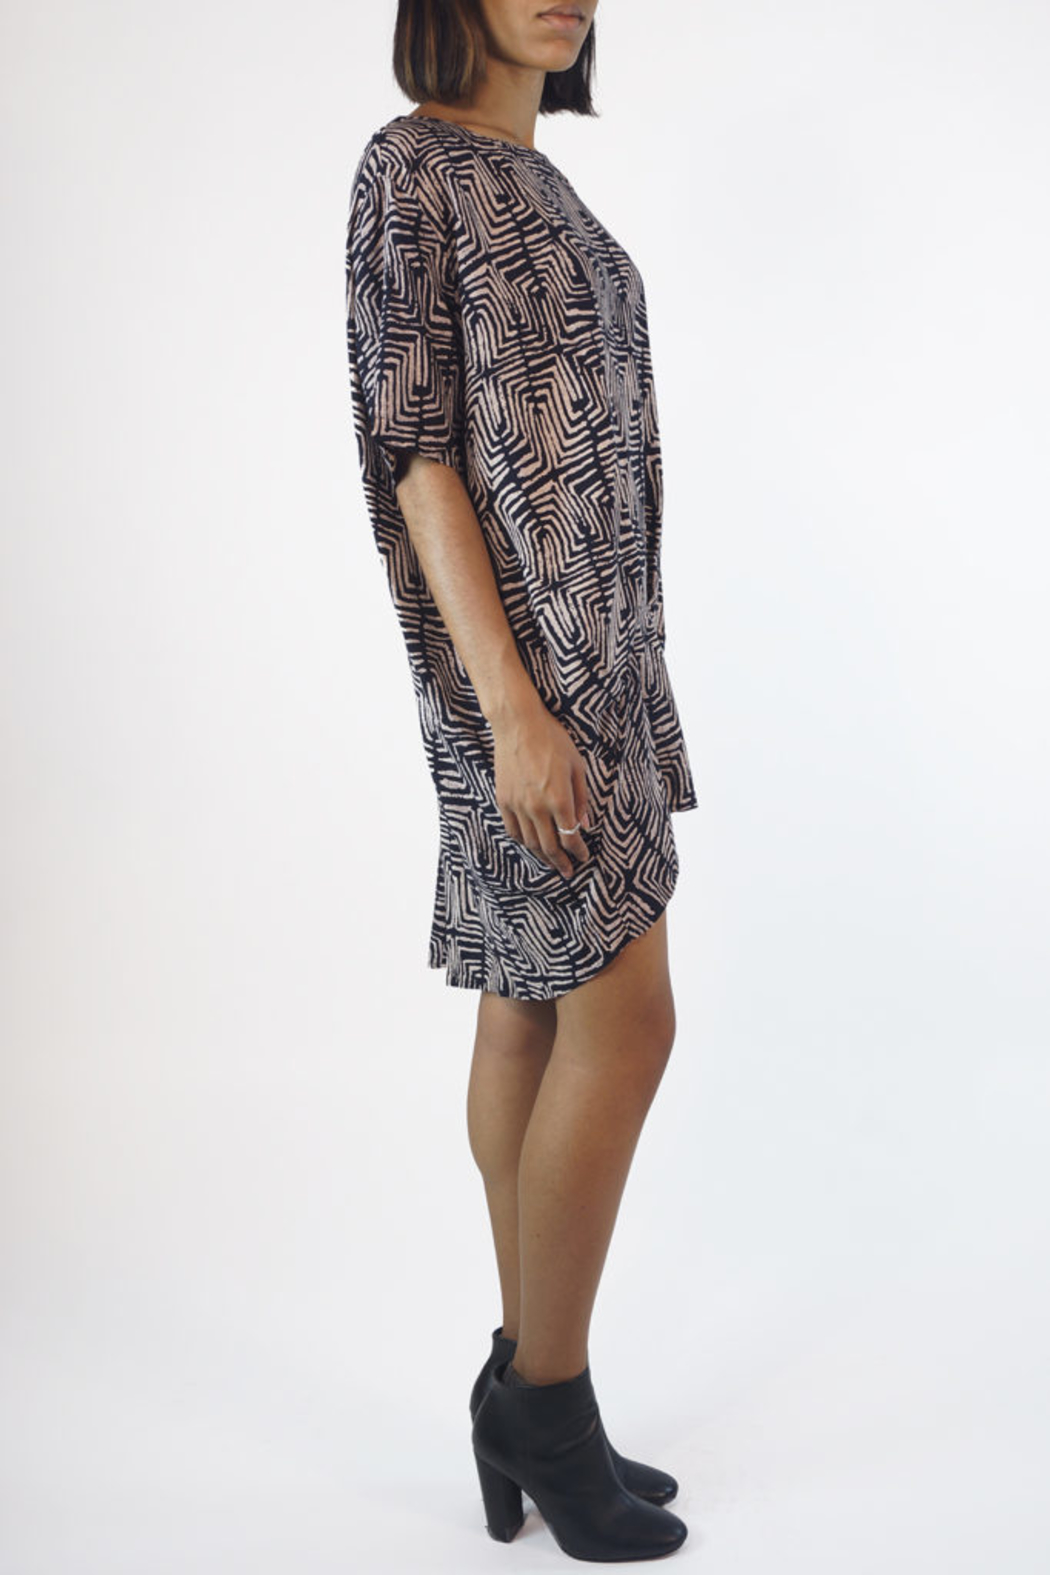 NU New York SCOOP GEO TUNIC - Side Cropped Image